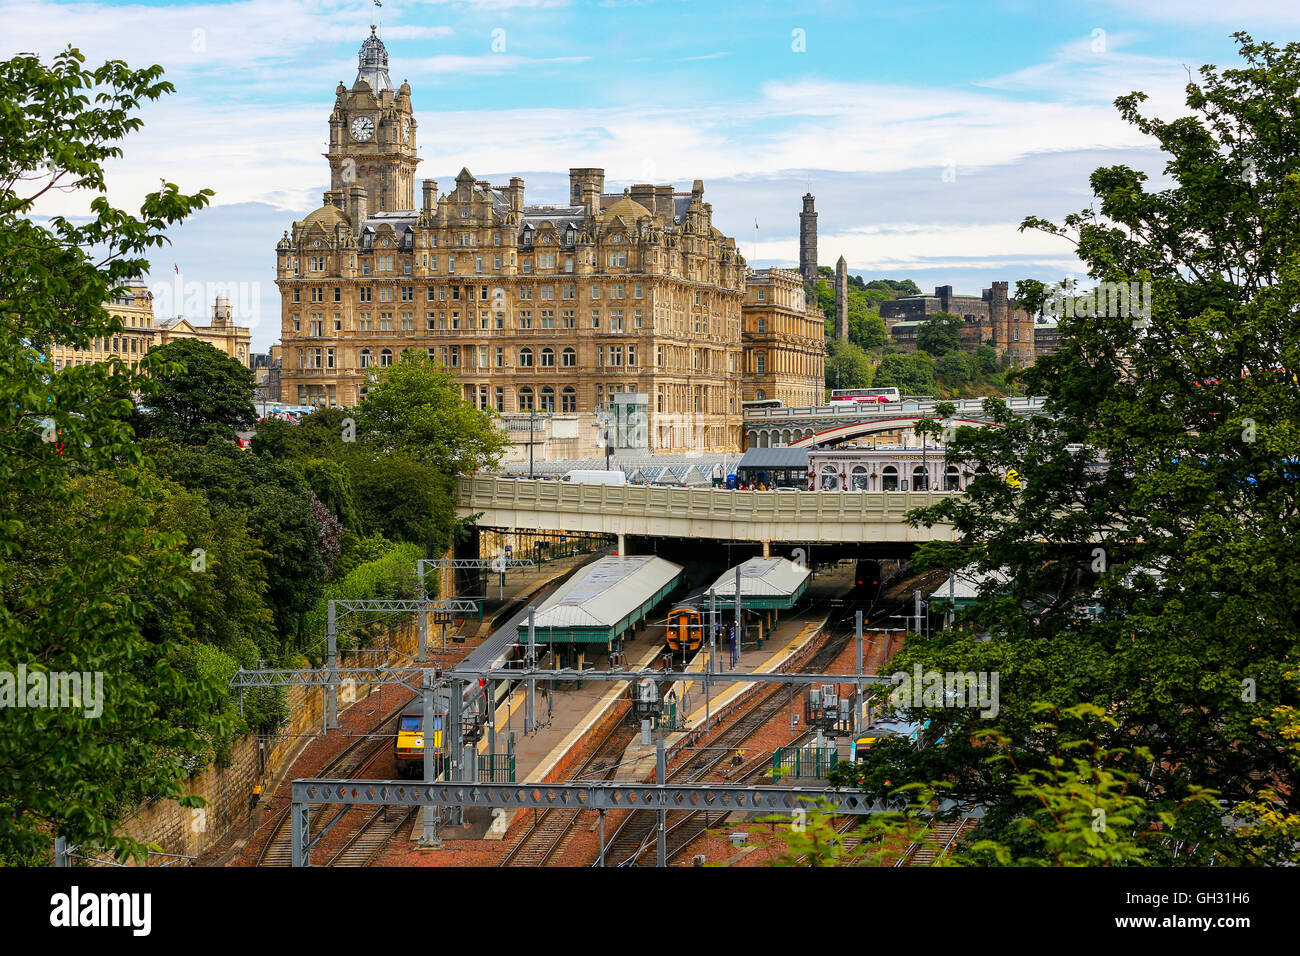 Waverley railway station and the Balmoral Hotel on Princes Street, Edinburgh, Scotland, UK - Stock Image